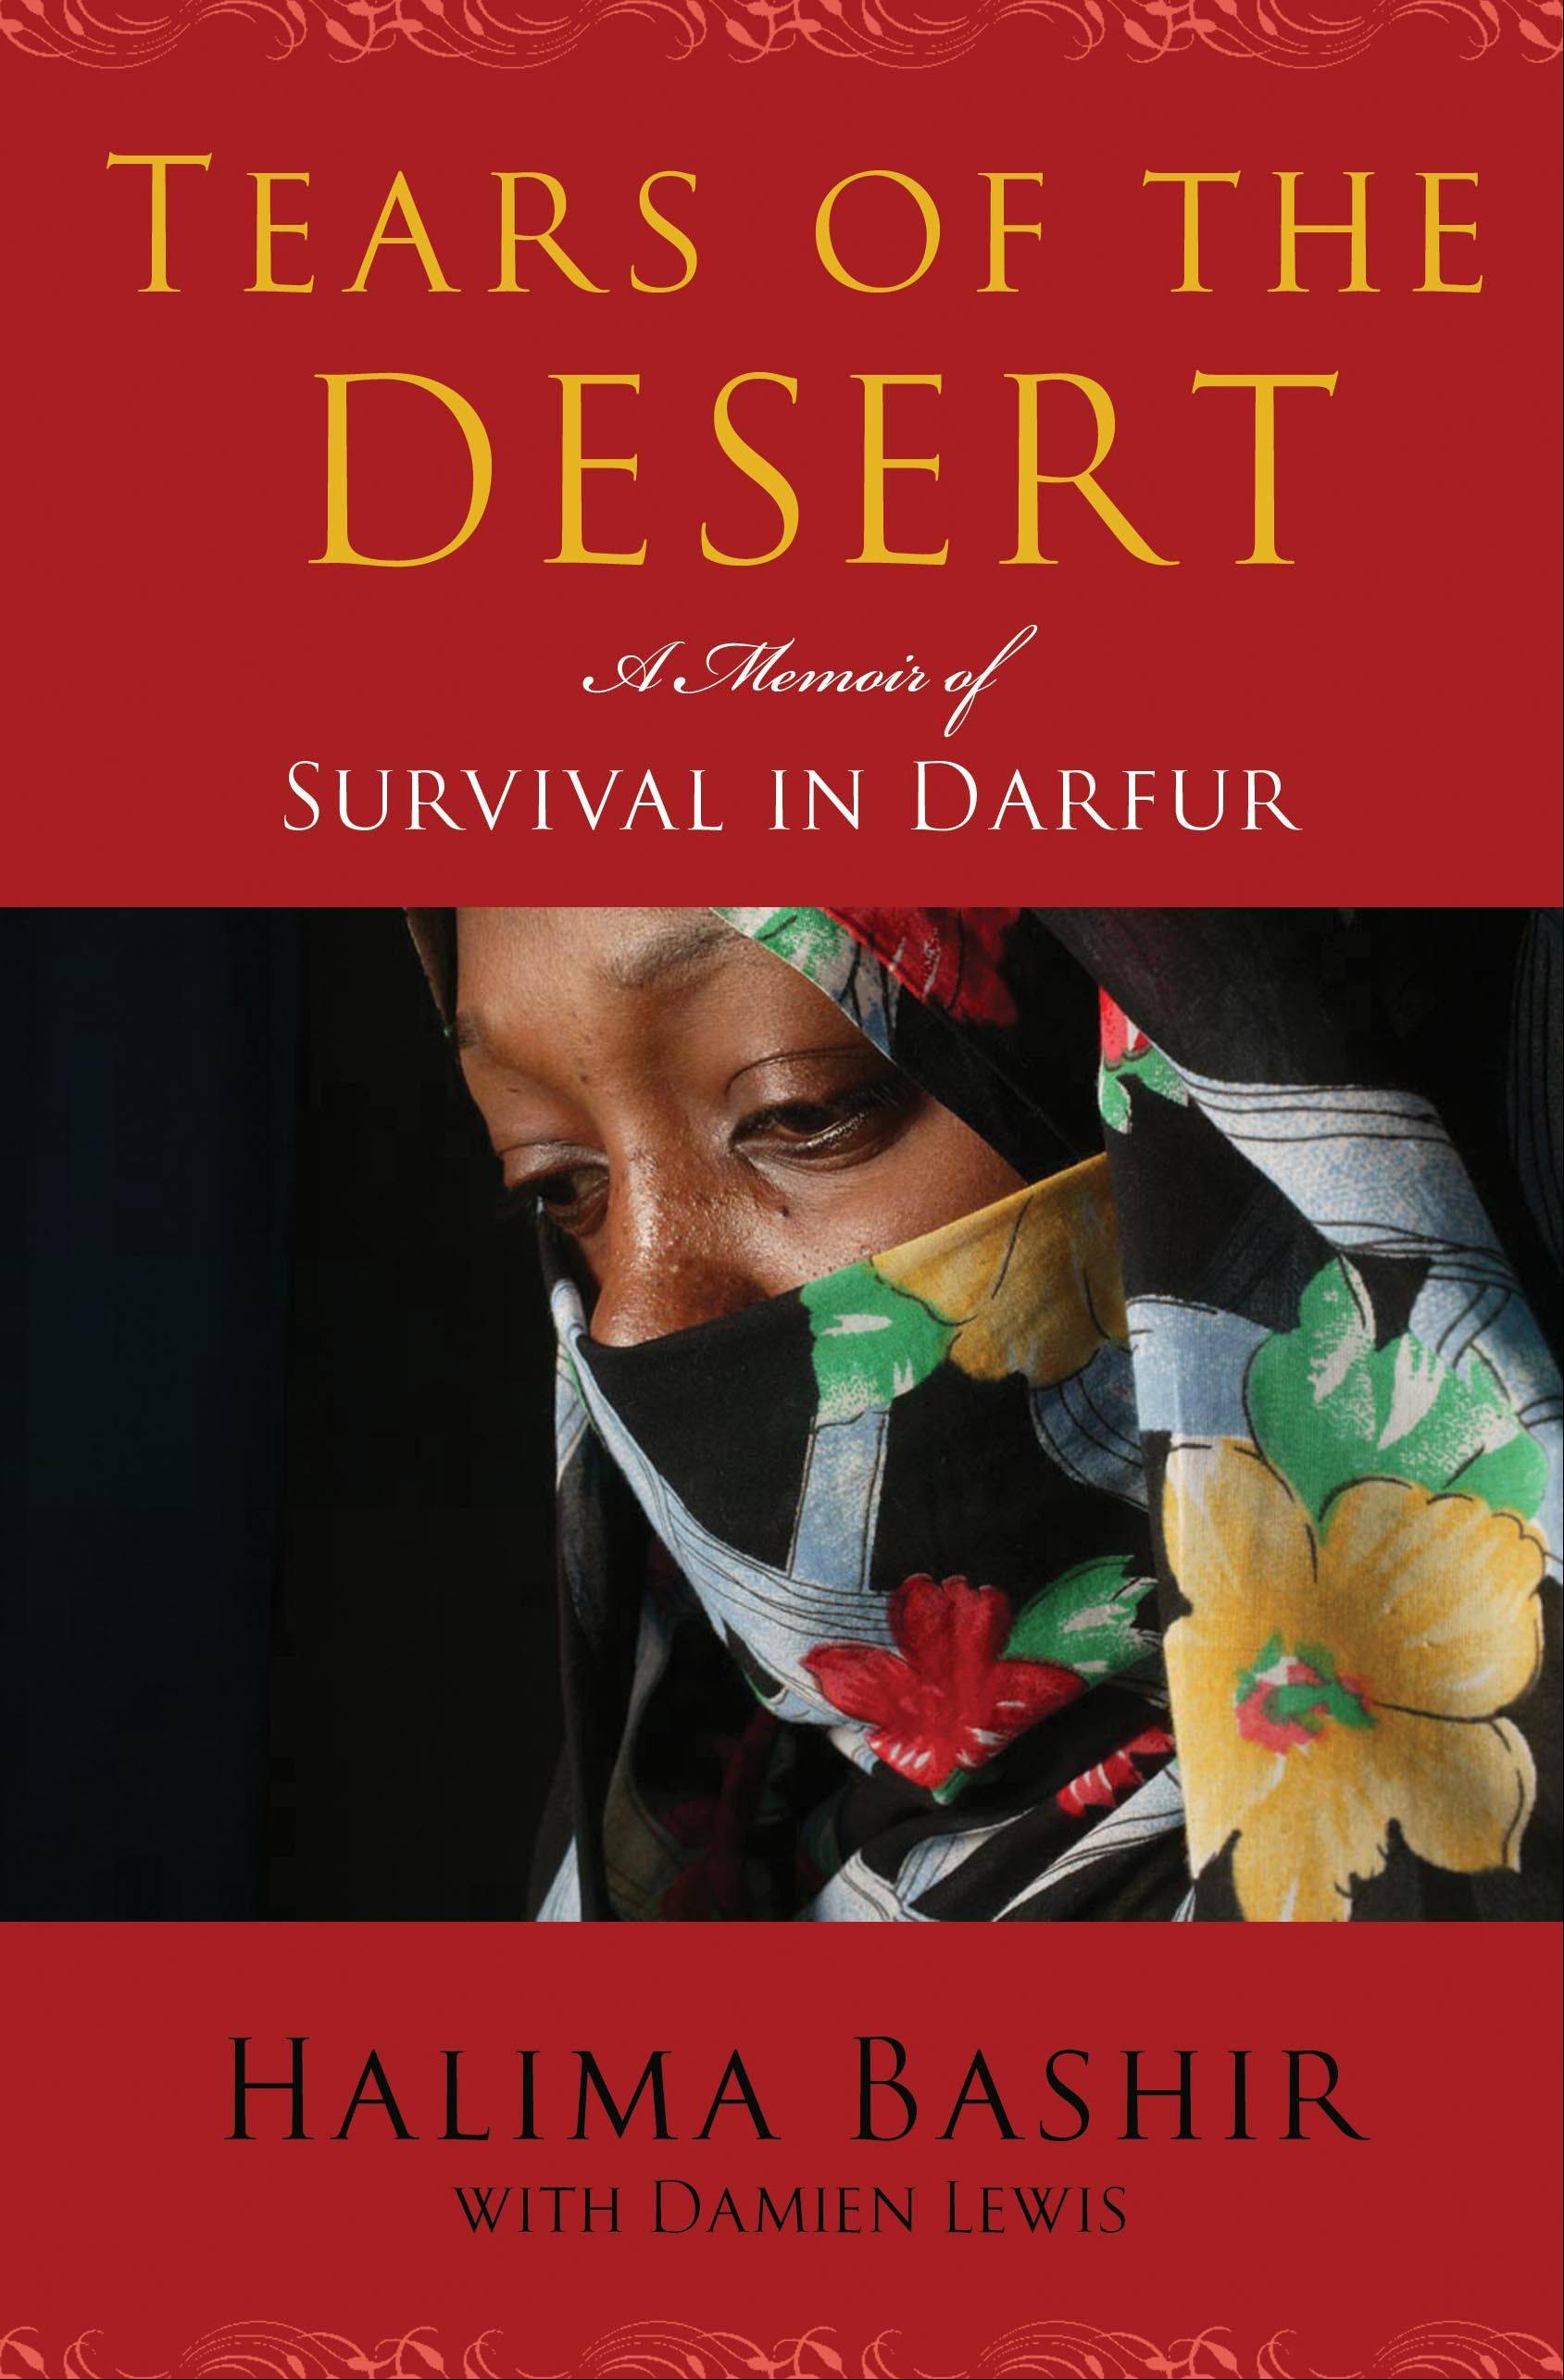 """Tears of the Desert: A Memoir of Survival in Darfur,"" by Halima Bashir, is the adult selection for this year's Suburban Mosaic book program."